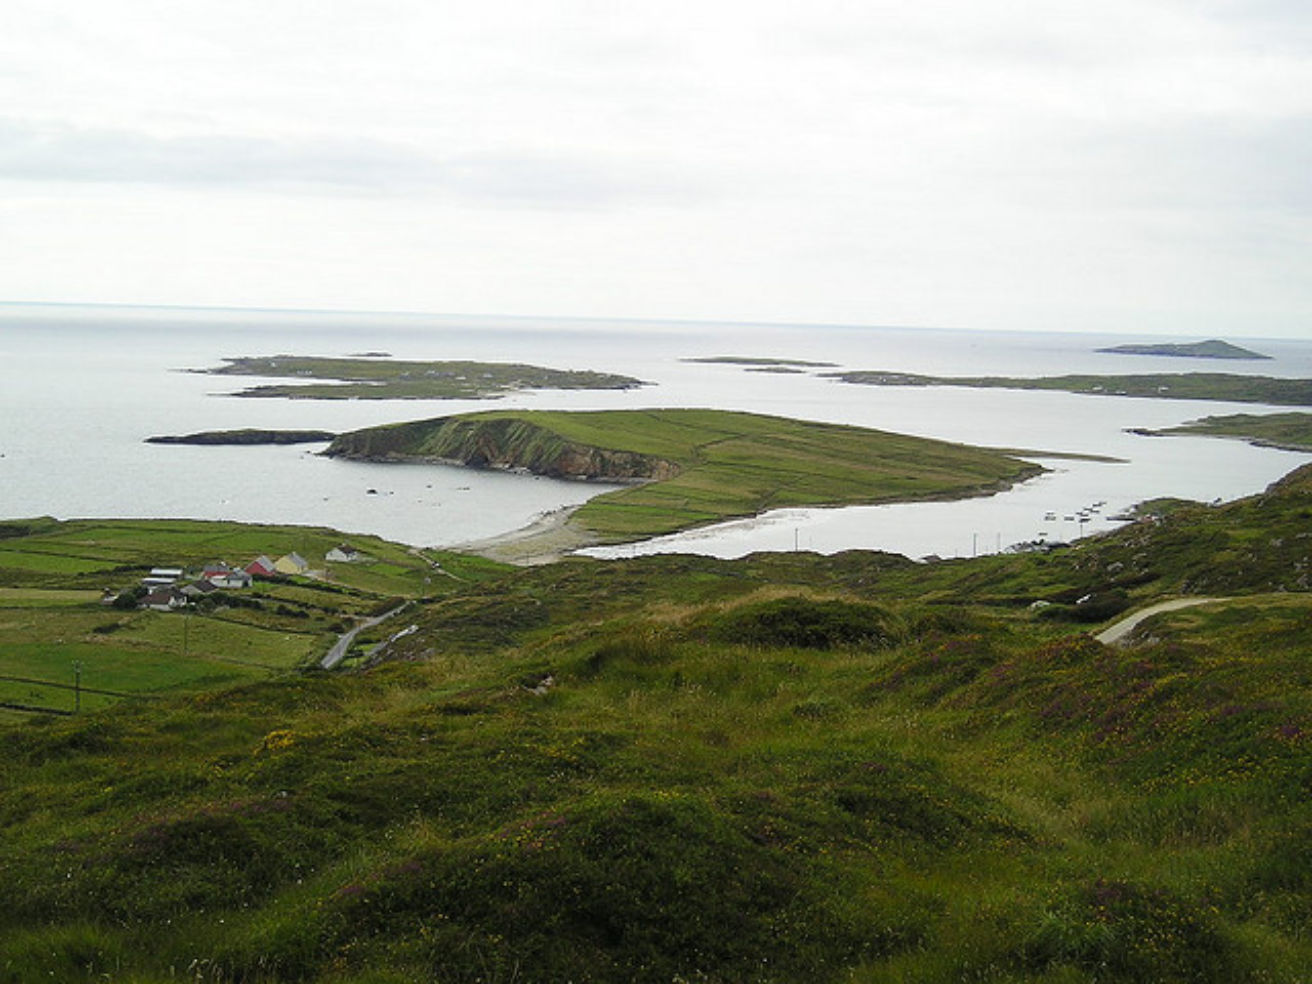 Green landscape in Clifden, on the west coast of Ireland